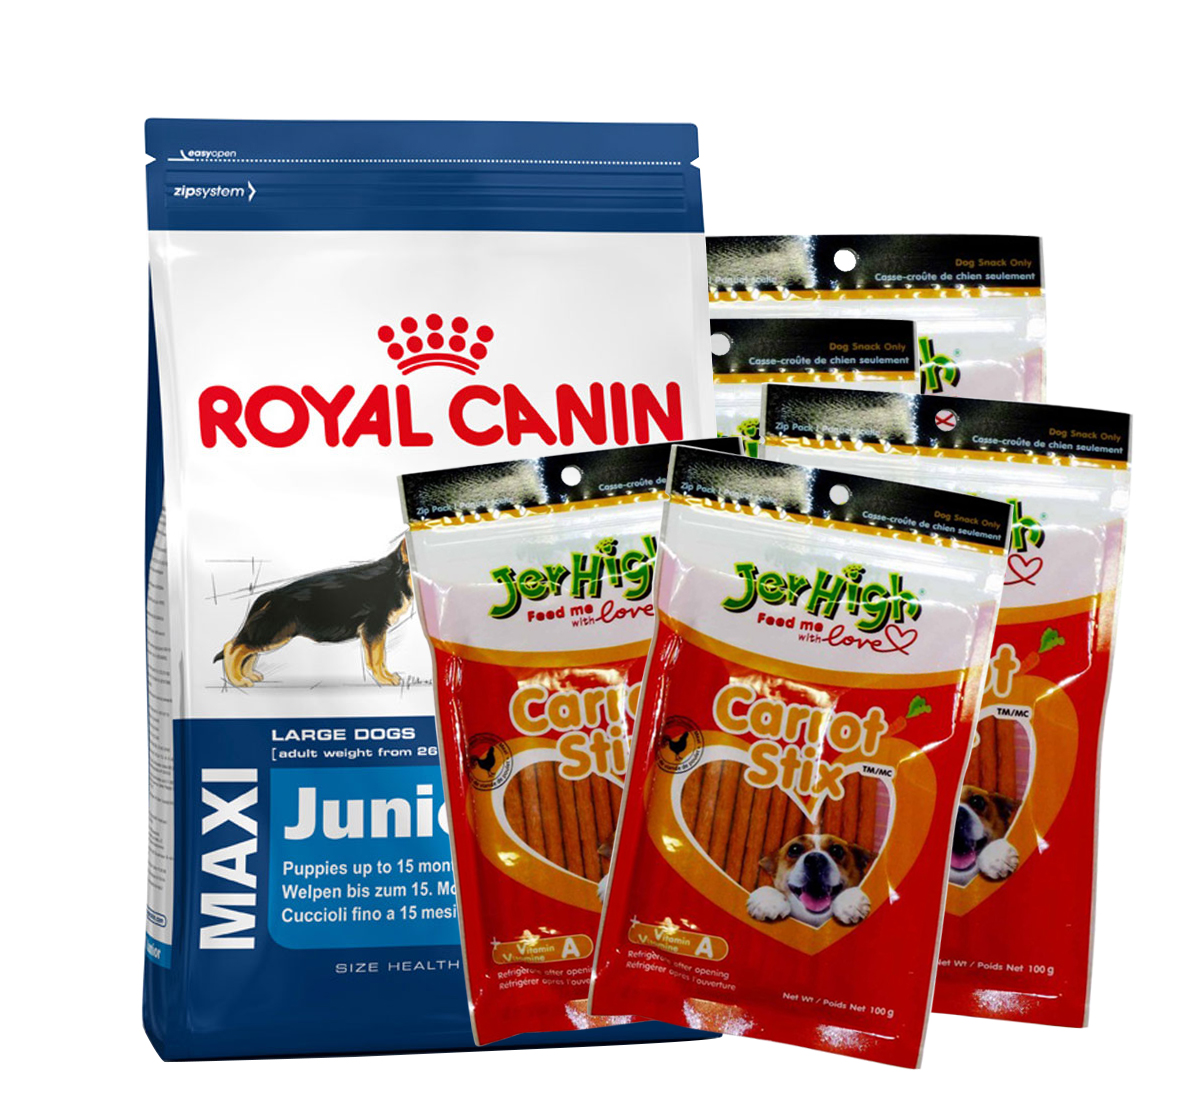 Royal Canin Maxi Junior - 4 Kg With JerHigh Carrot Stick Dog Treats